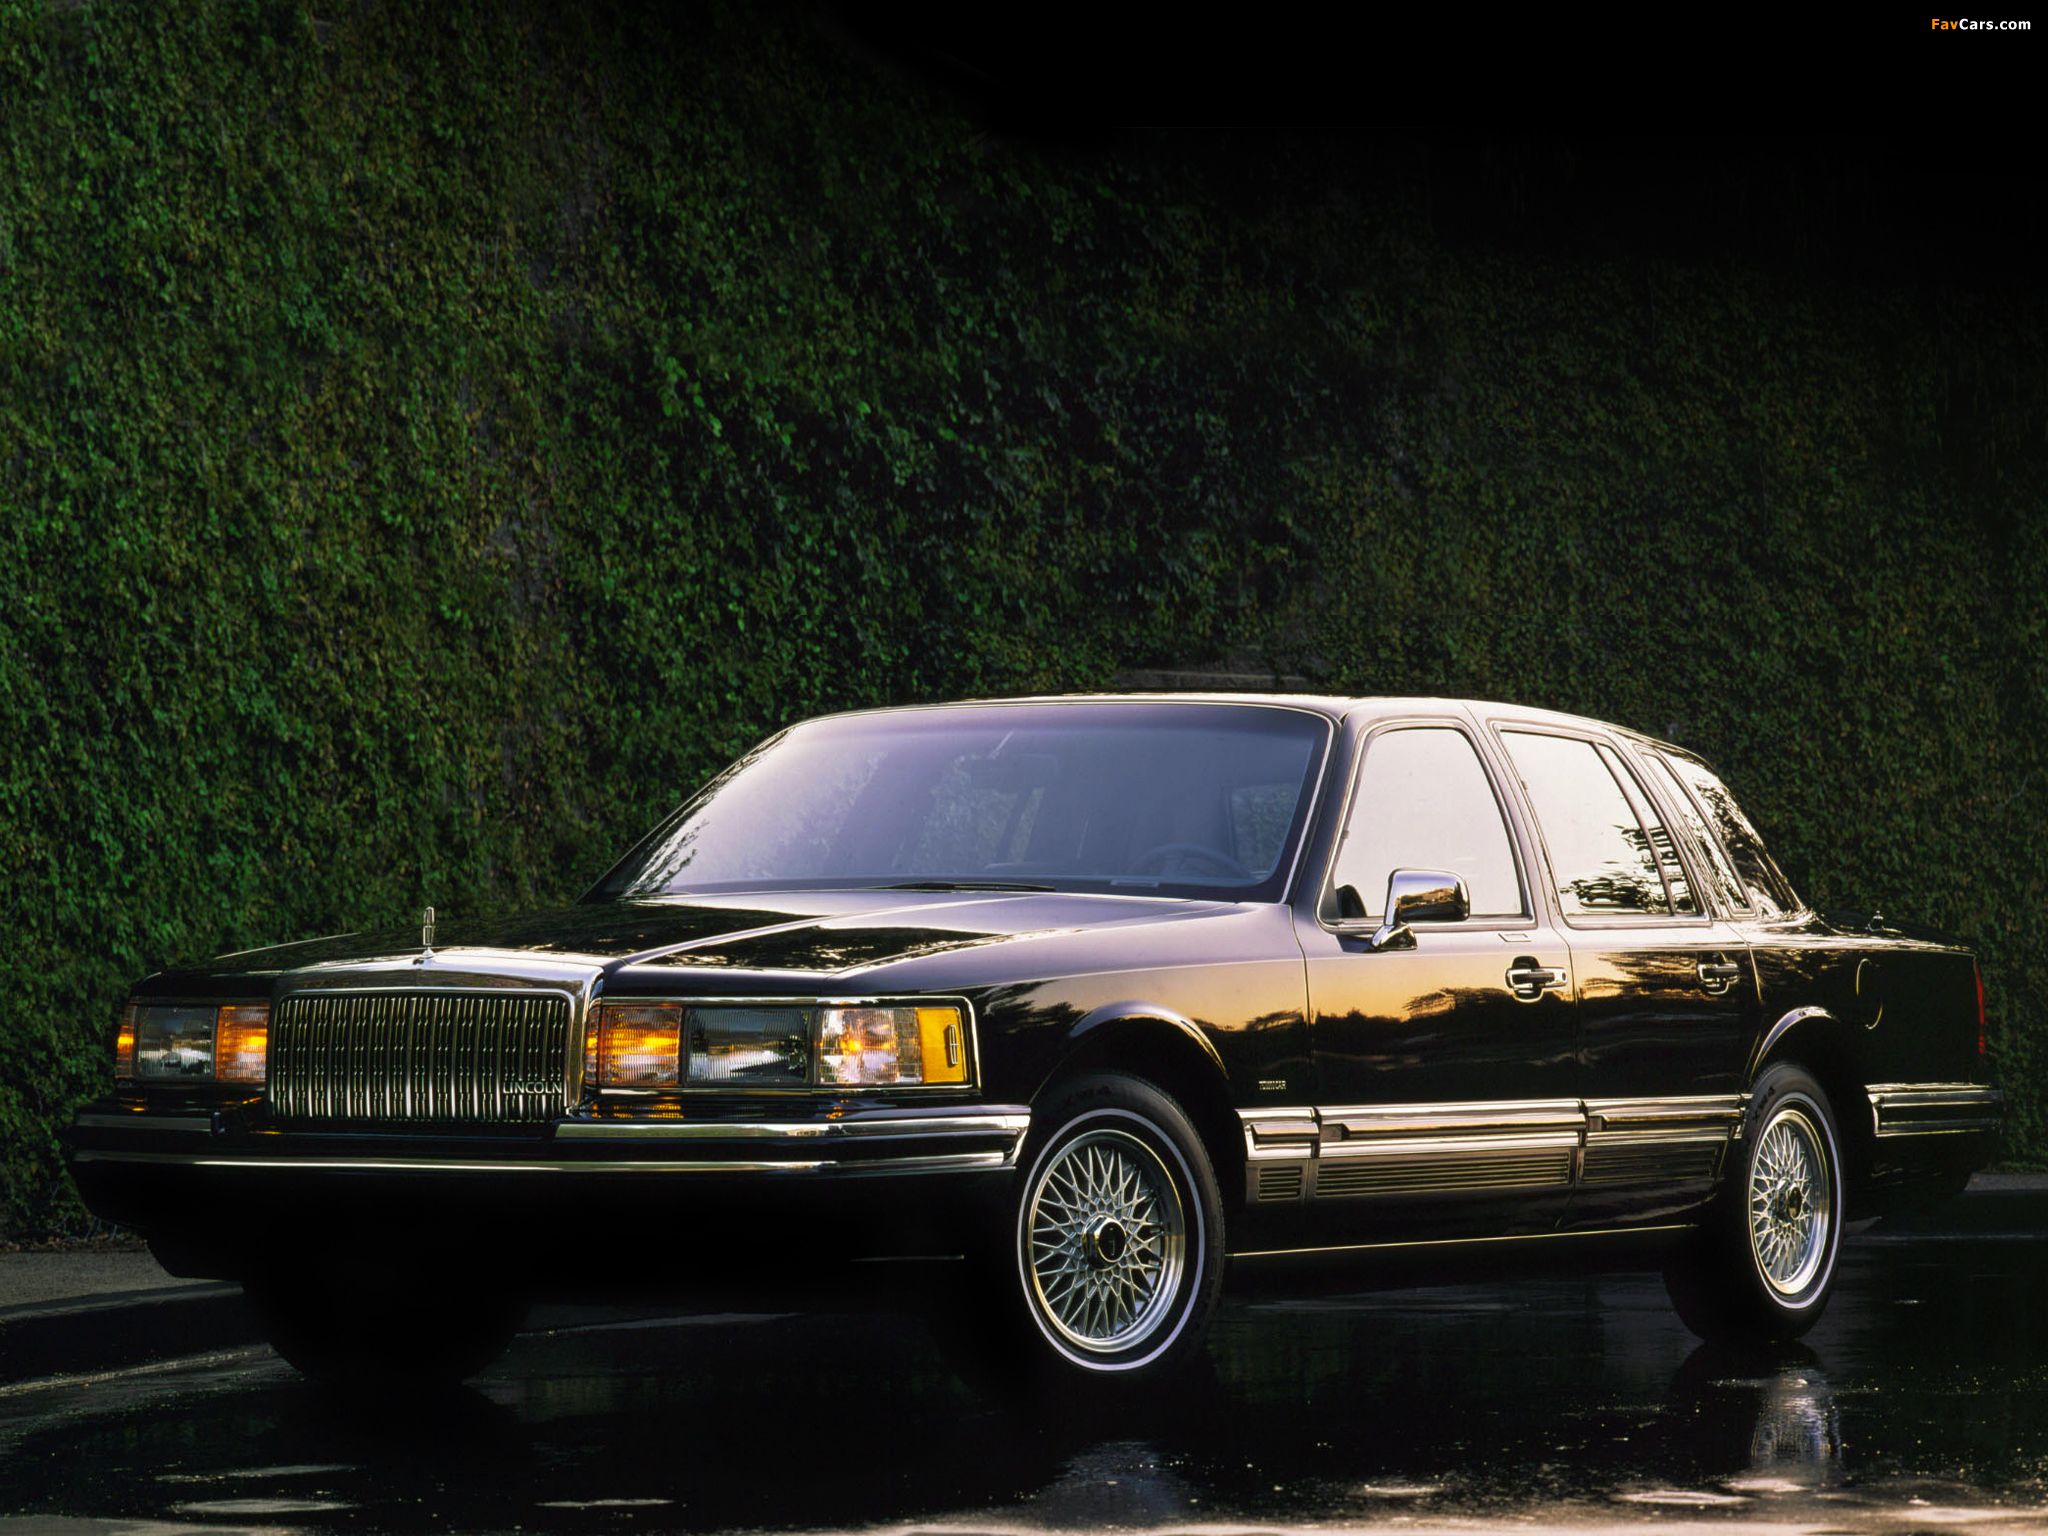 photos of lincoln town car 1992 94 2048x1536. Black Bedroom Furniture Sets. Home Design Ideas